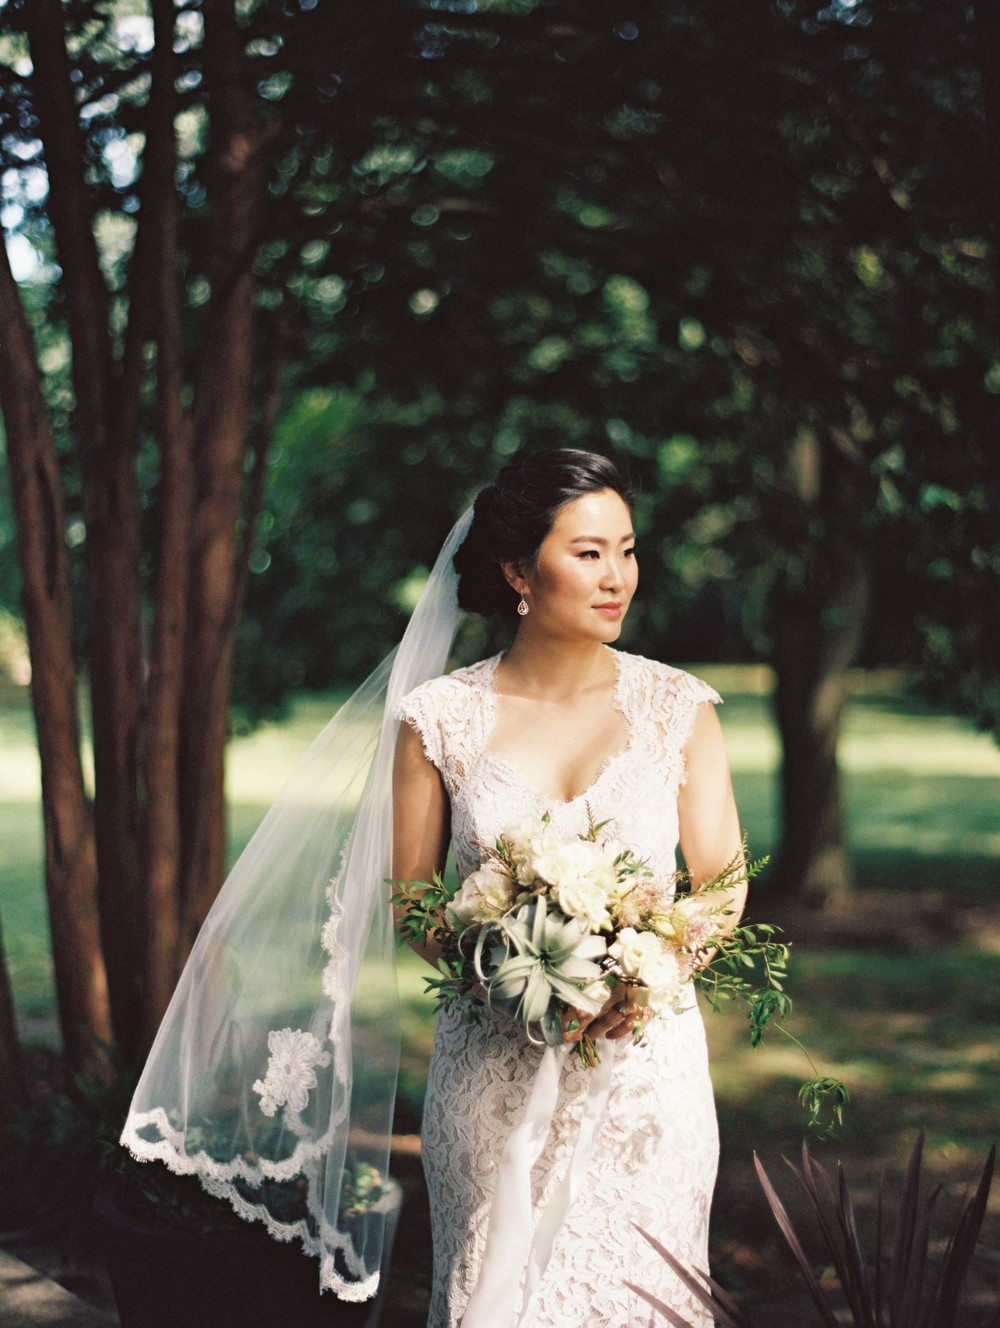 Commanders-mansion-wedding-20.jpg